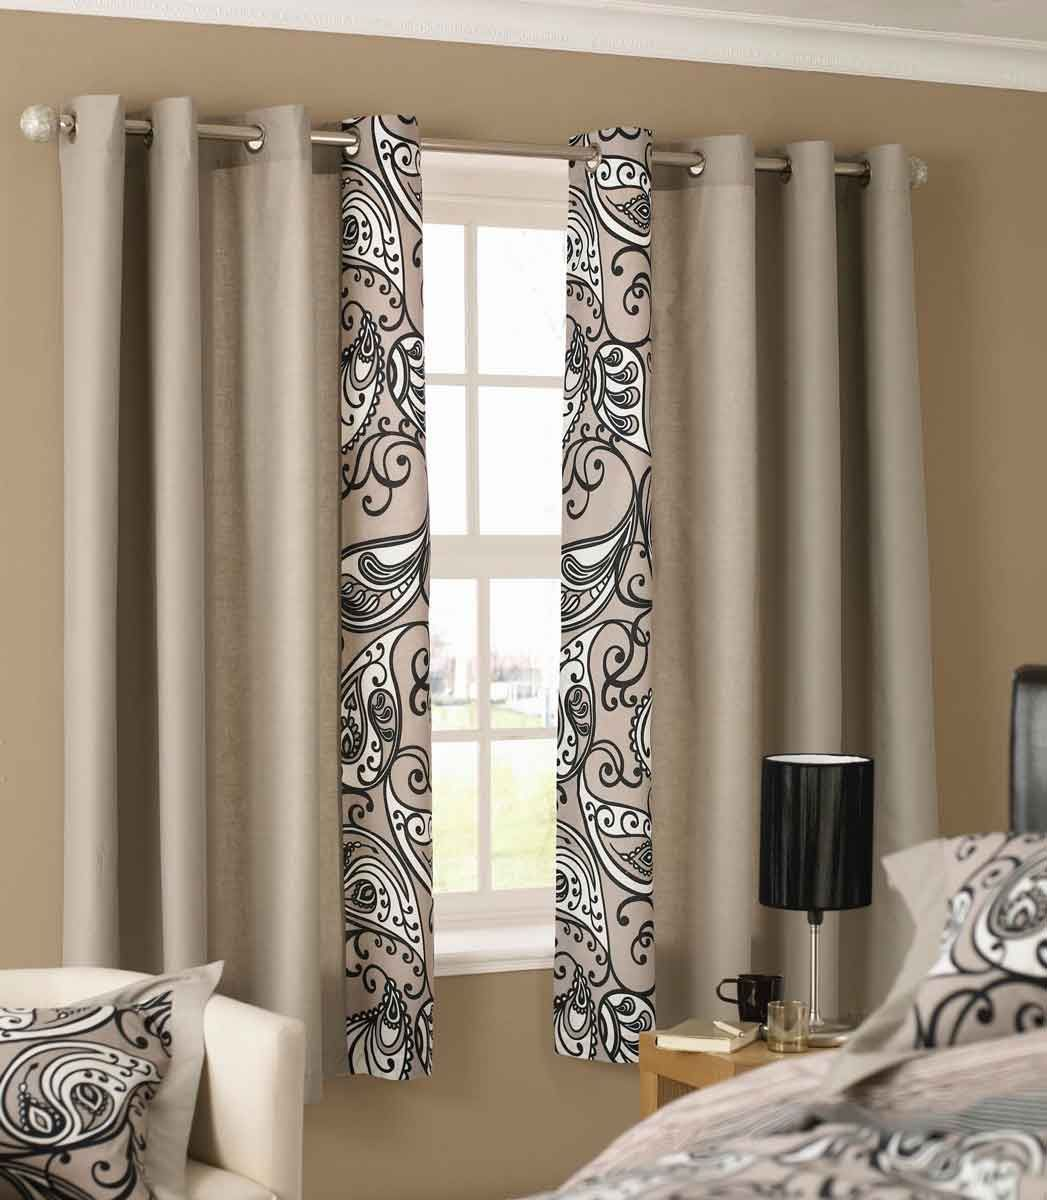 Bedrooms dress your windows in classy and timeless curtains